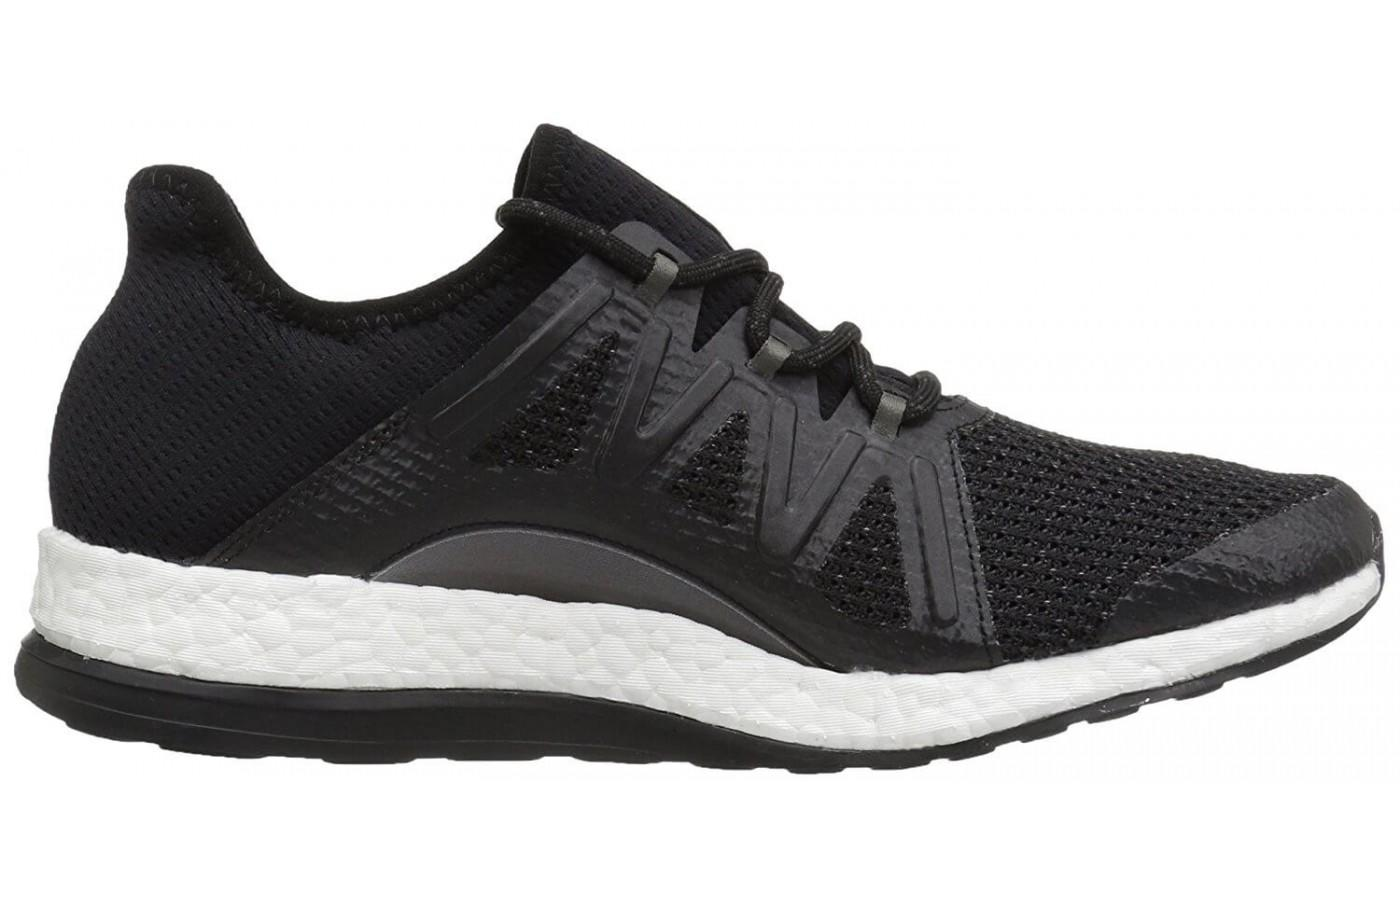 the stylish adidas pureBOOST Xpose is a sleek and smart-looking everyday trainer